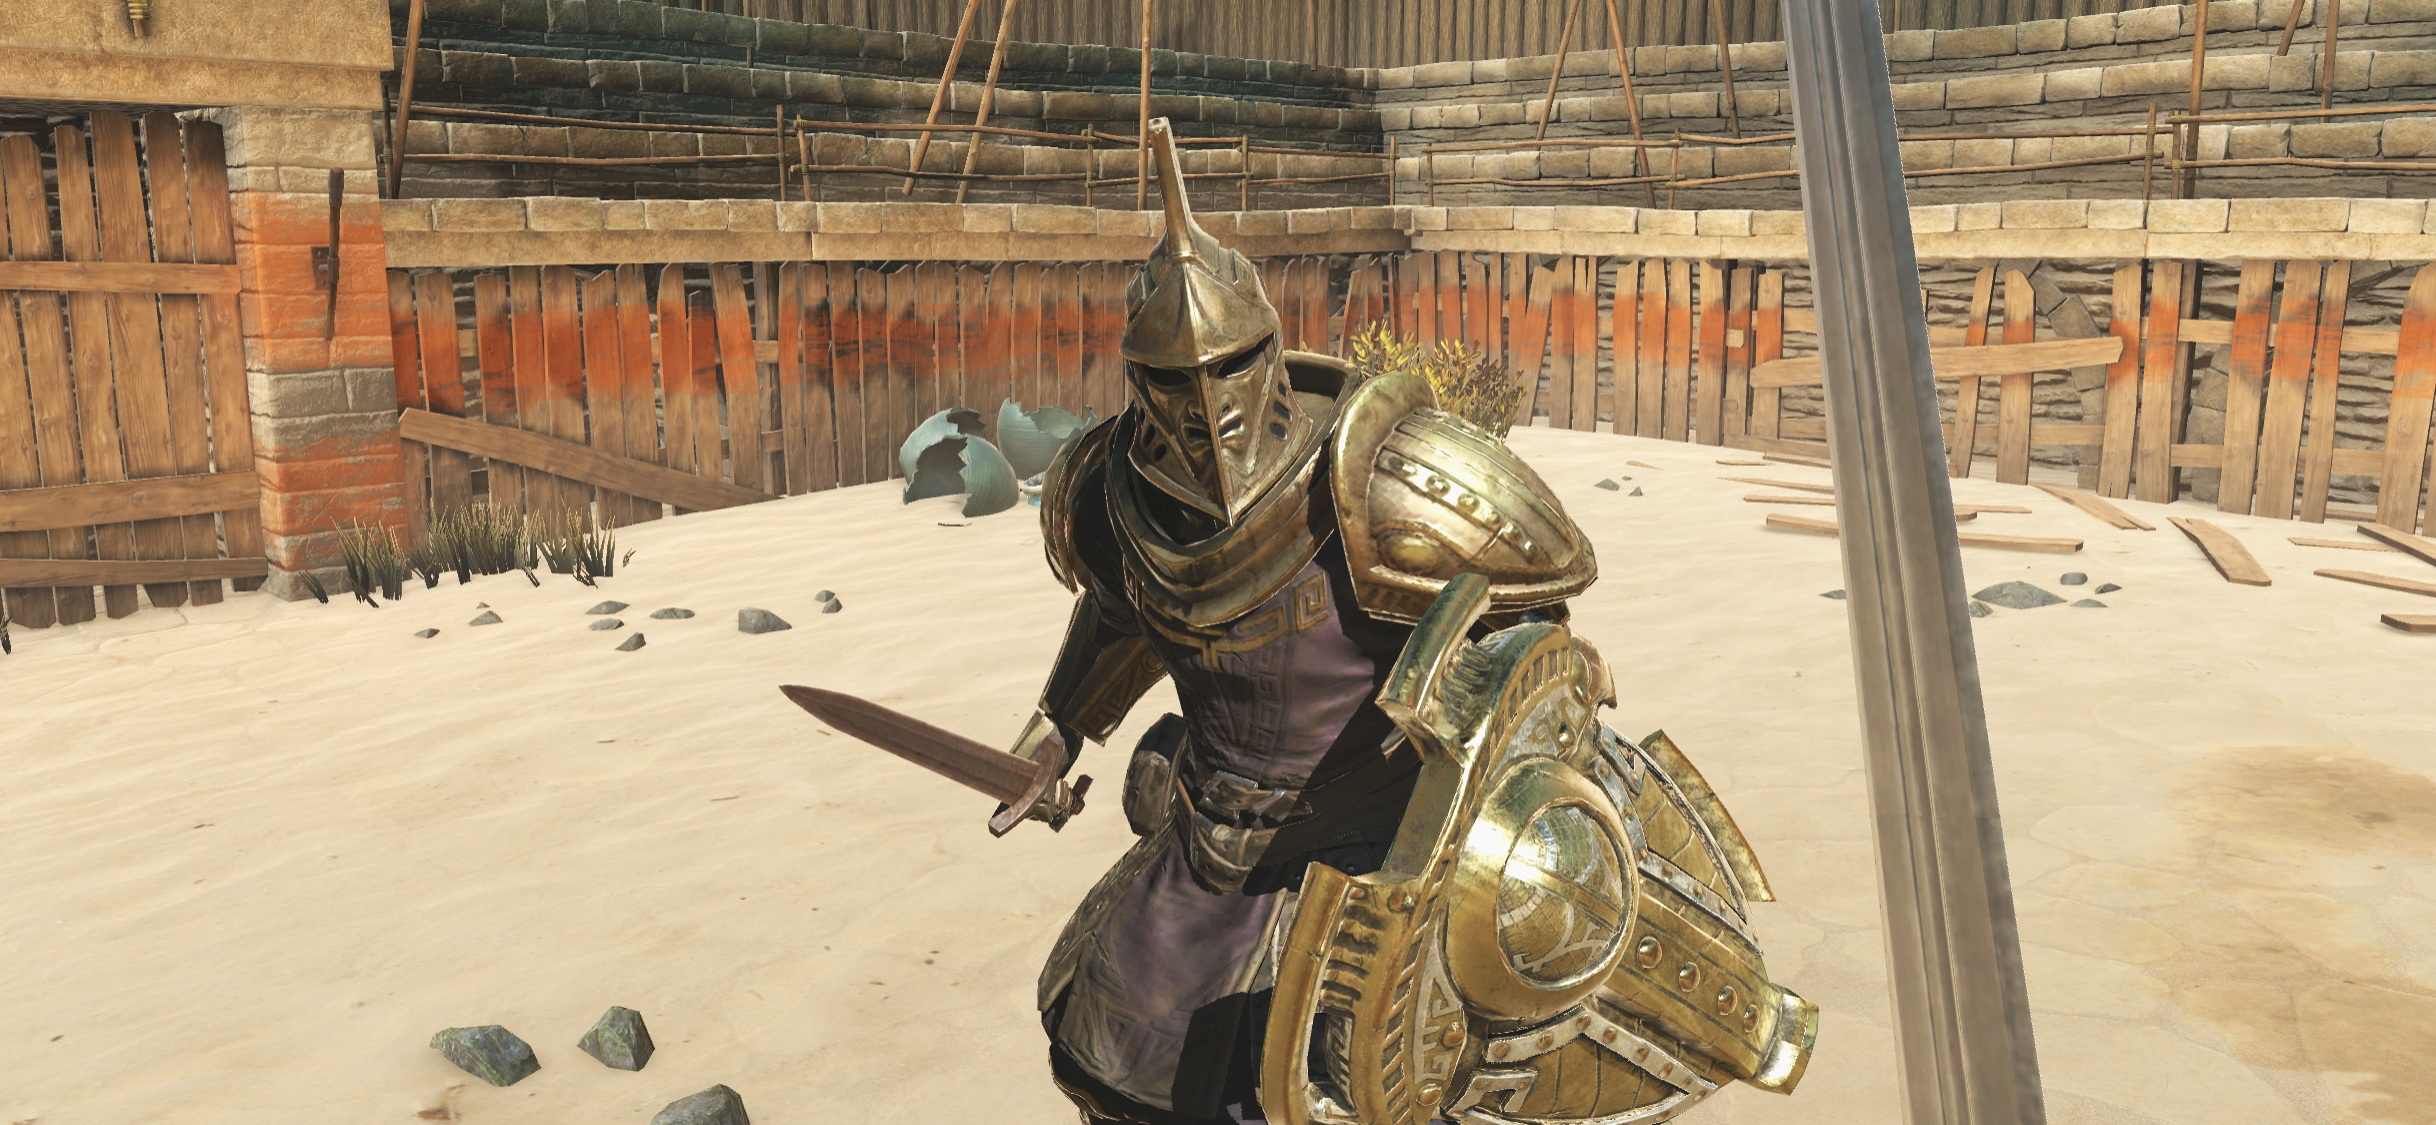 The Elder Scrolls Blades: Can it appeal to fans of Skyrim? - Polygon